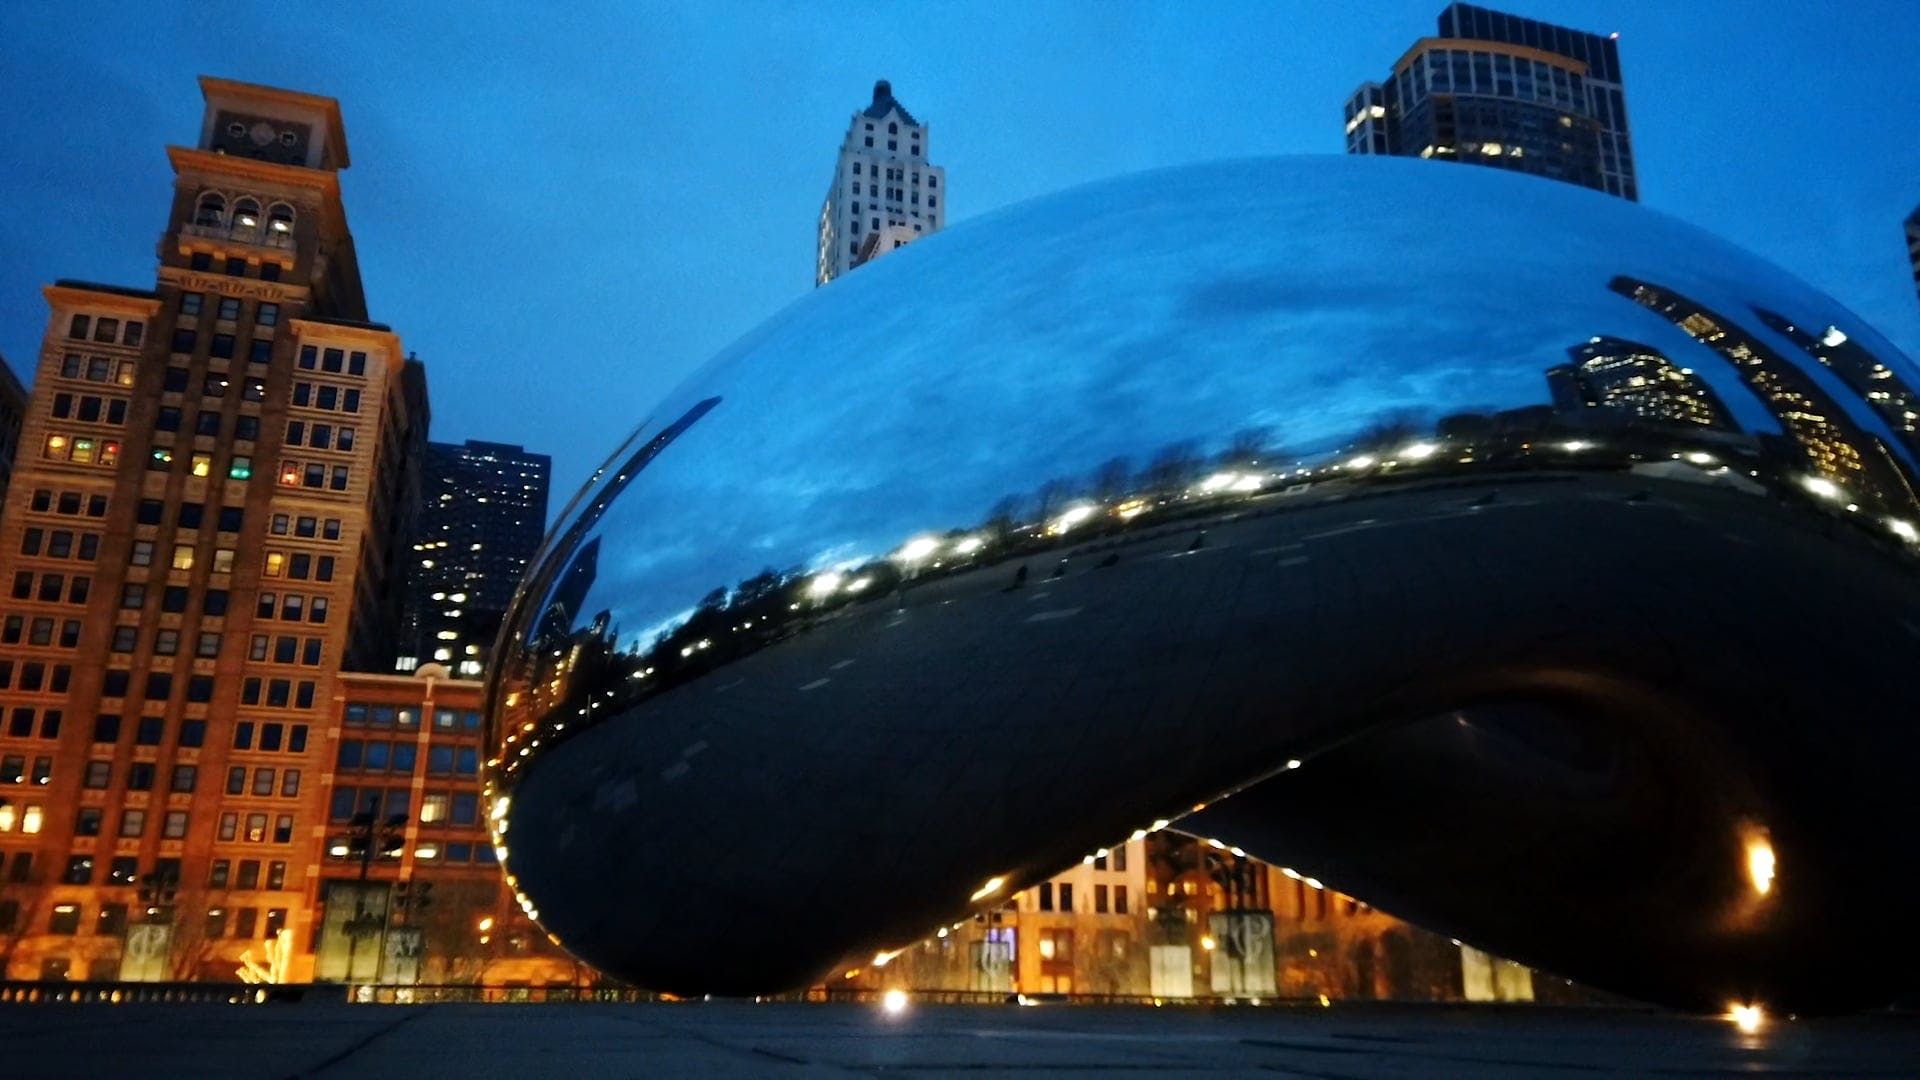 The Bean- Chicago's Millennium Park